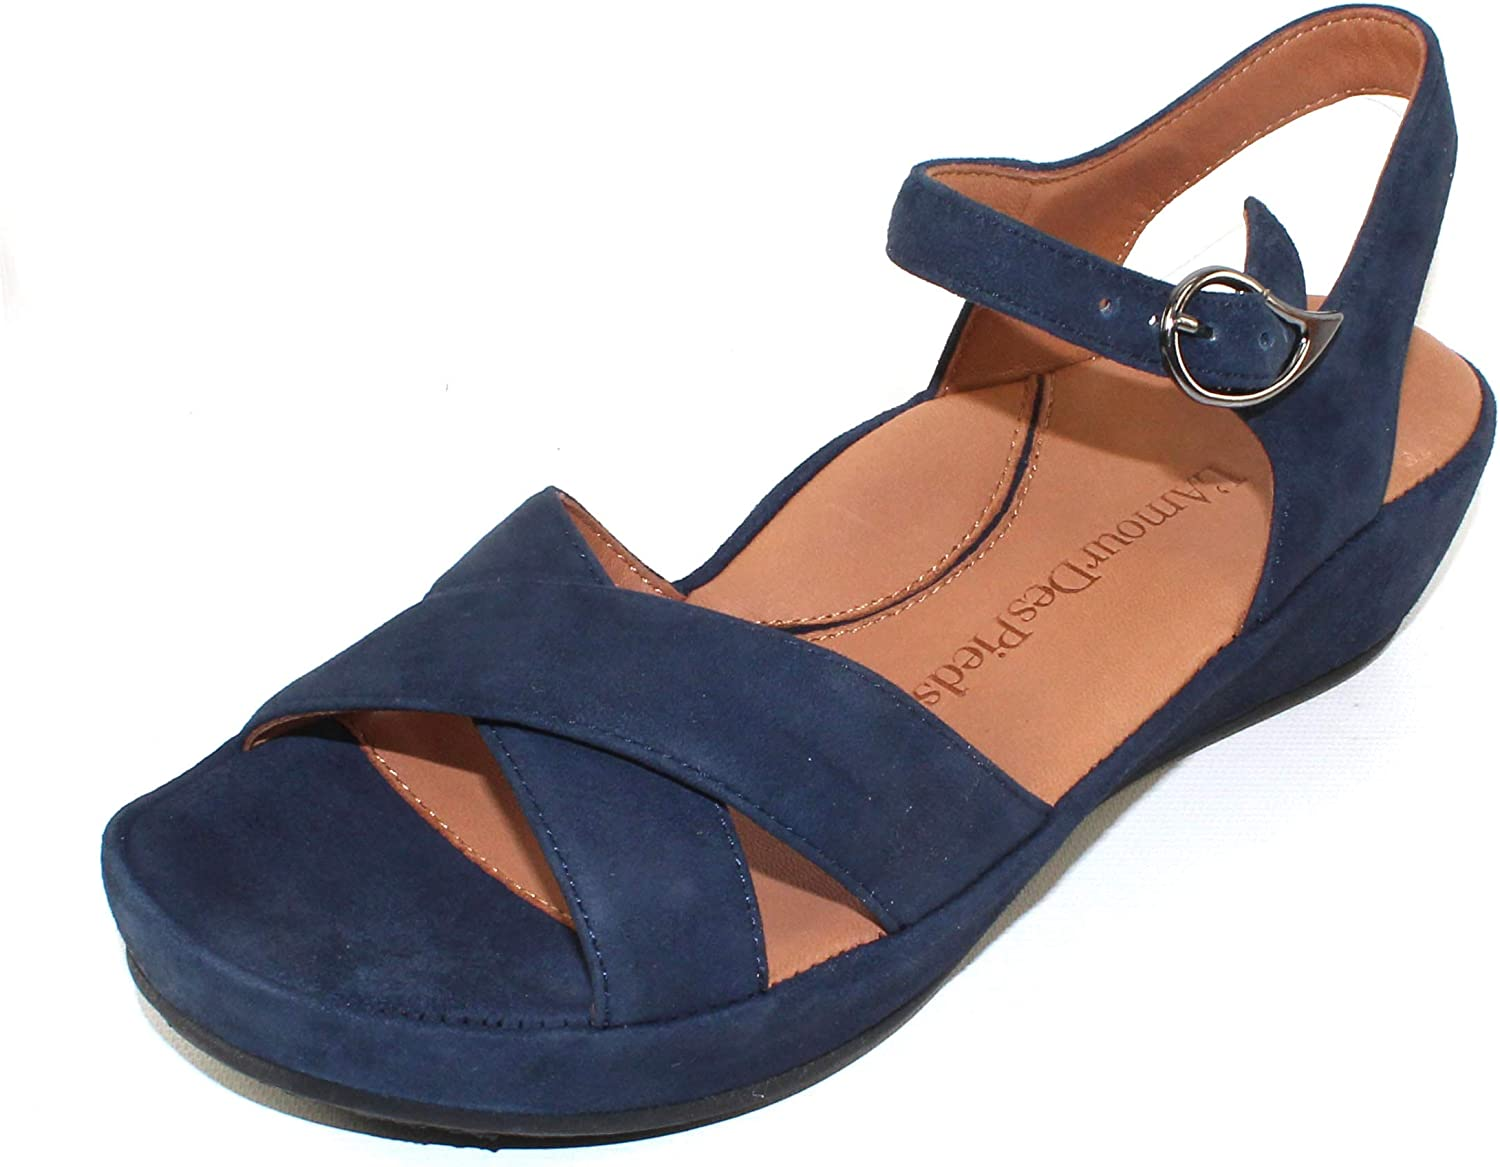 Lamour Des Pieds Women's Casimiro in Navy Kid Suede - Size 11 M